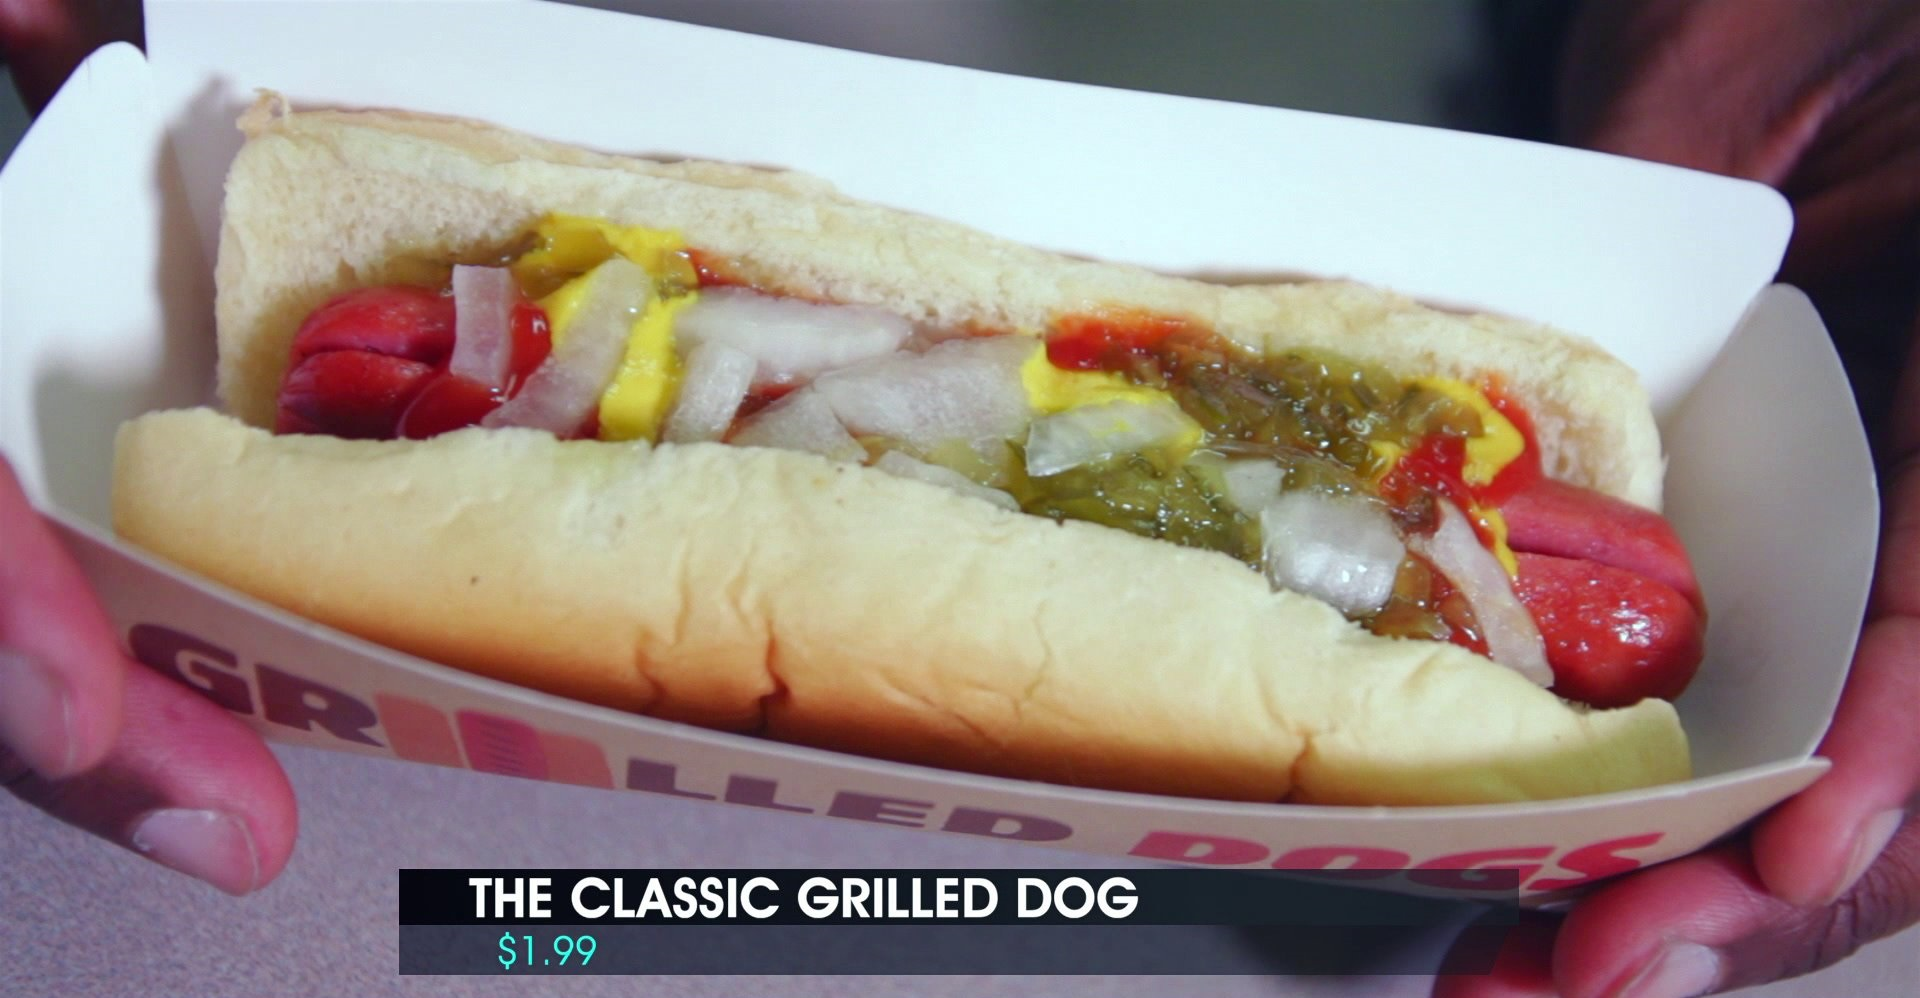 We Try Burger King's Grilled Hot Dogs